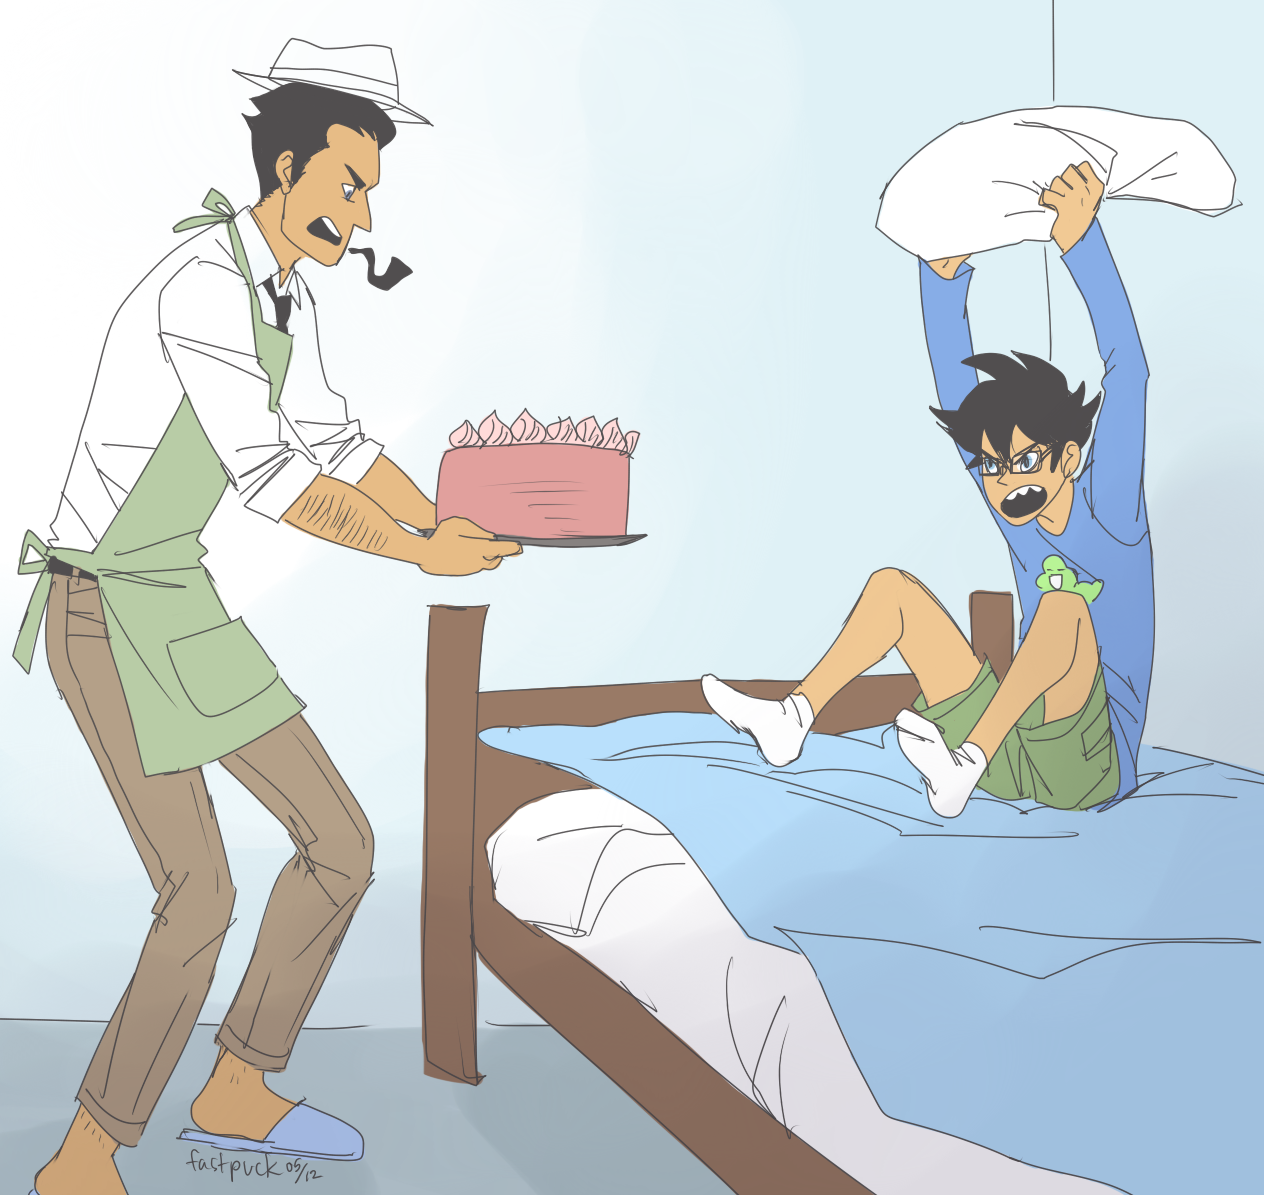 ((SON, PLEASE EAT THE CAKE I MADE FOR YOU. no dad! i ...